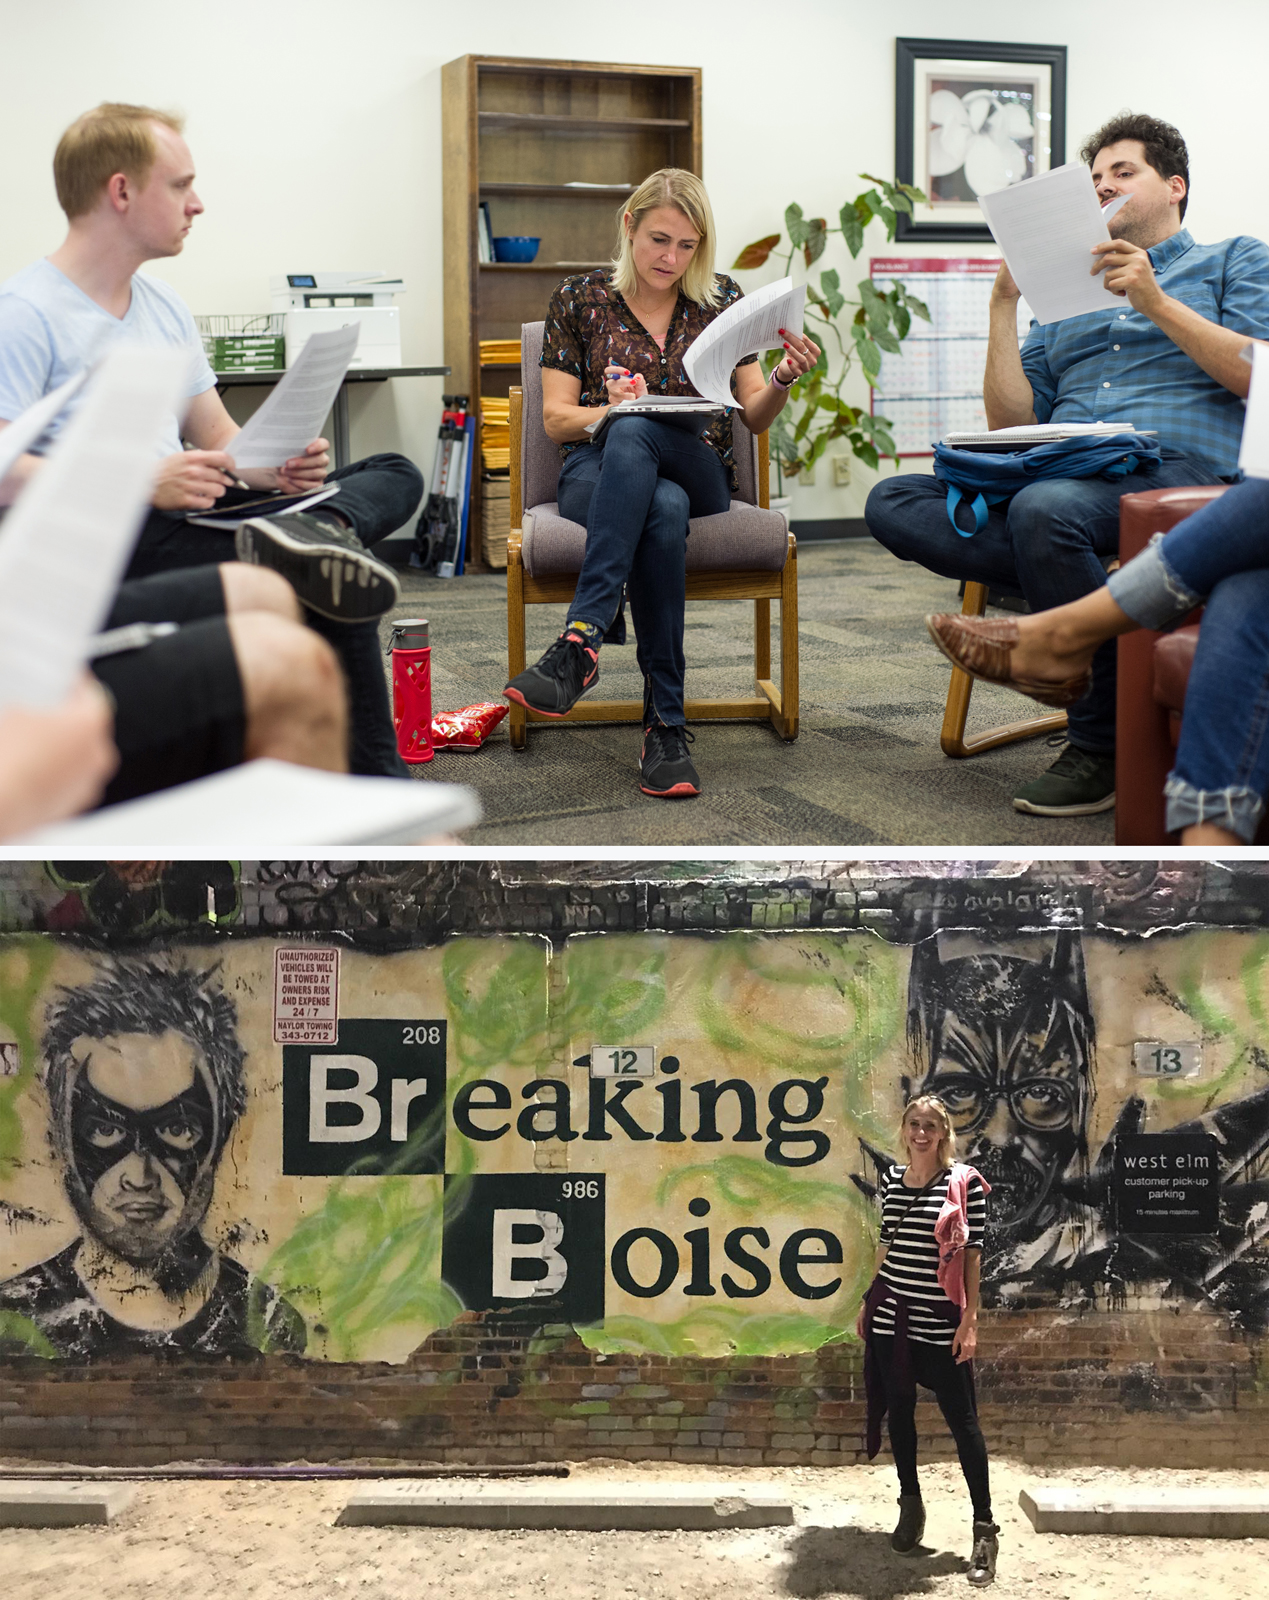 Two images. Top includes people in a writing workshop. Bottom includes Heather Marion in front of Breaking Boise mural